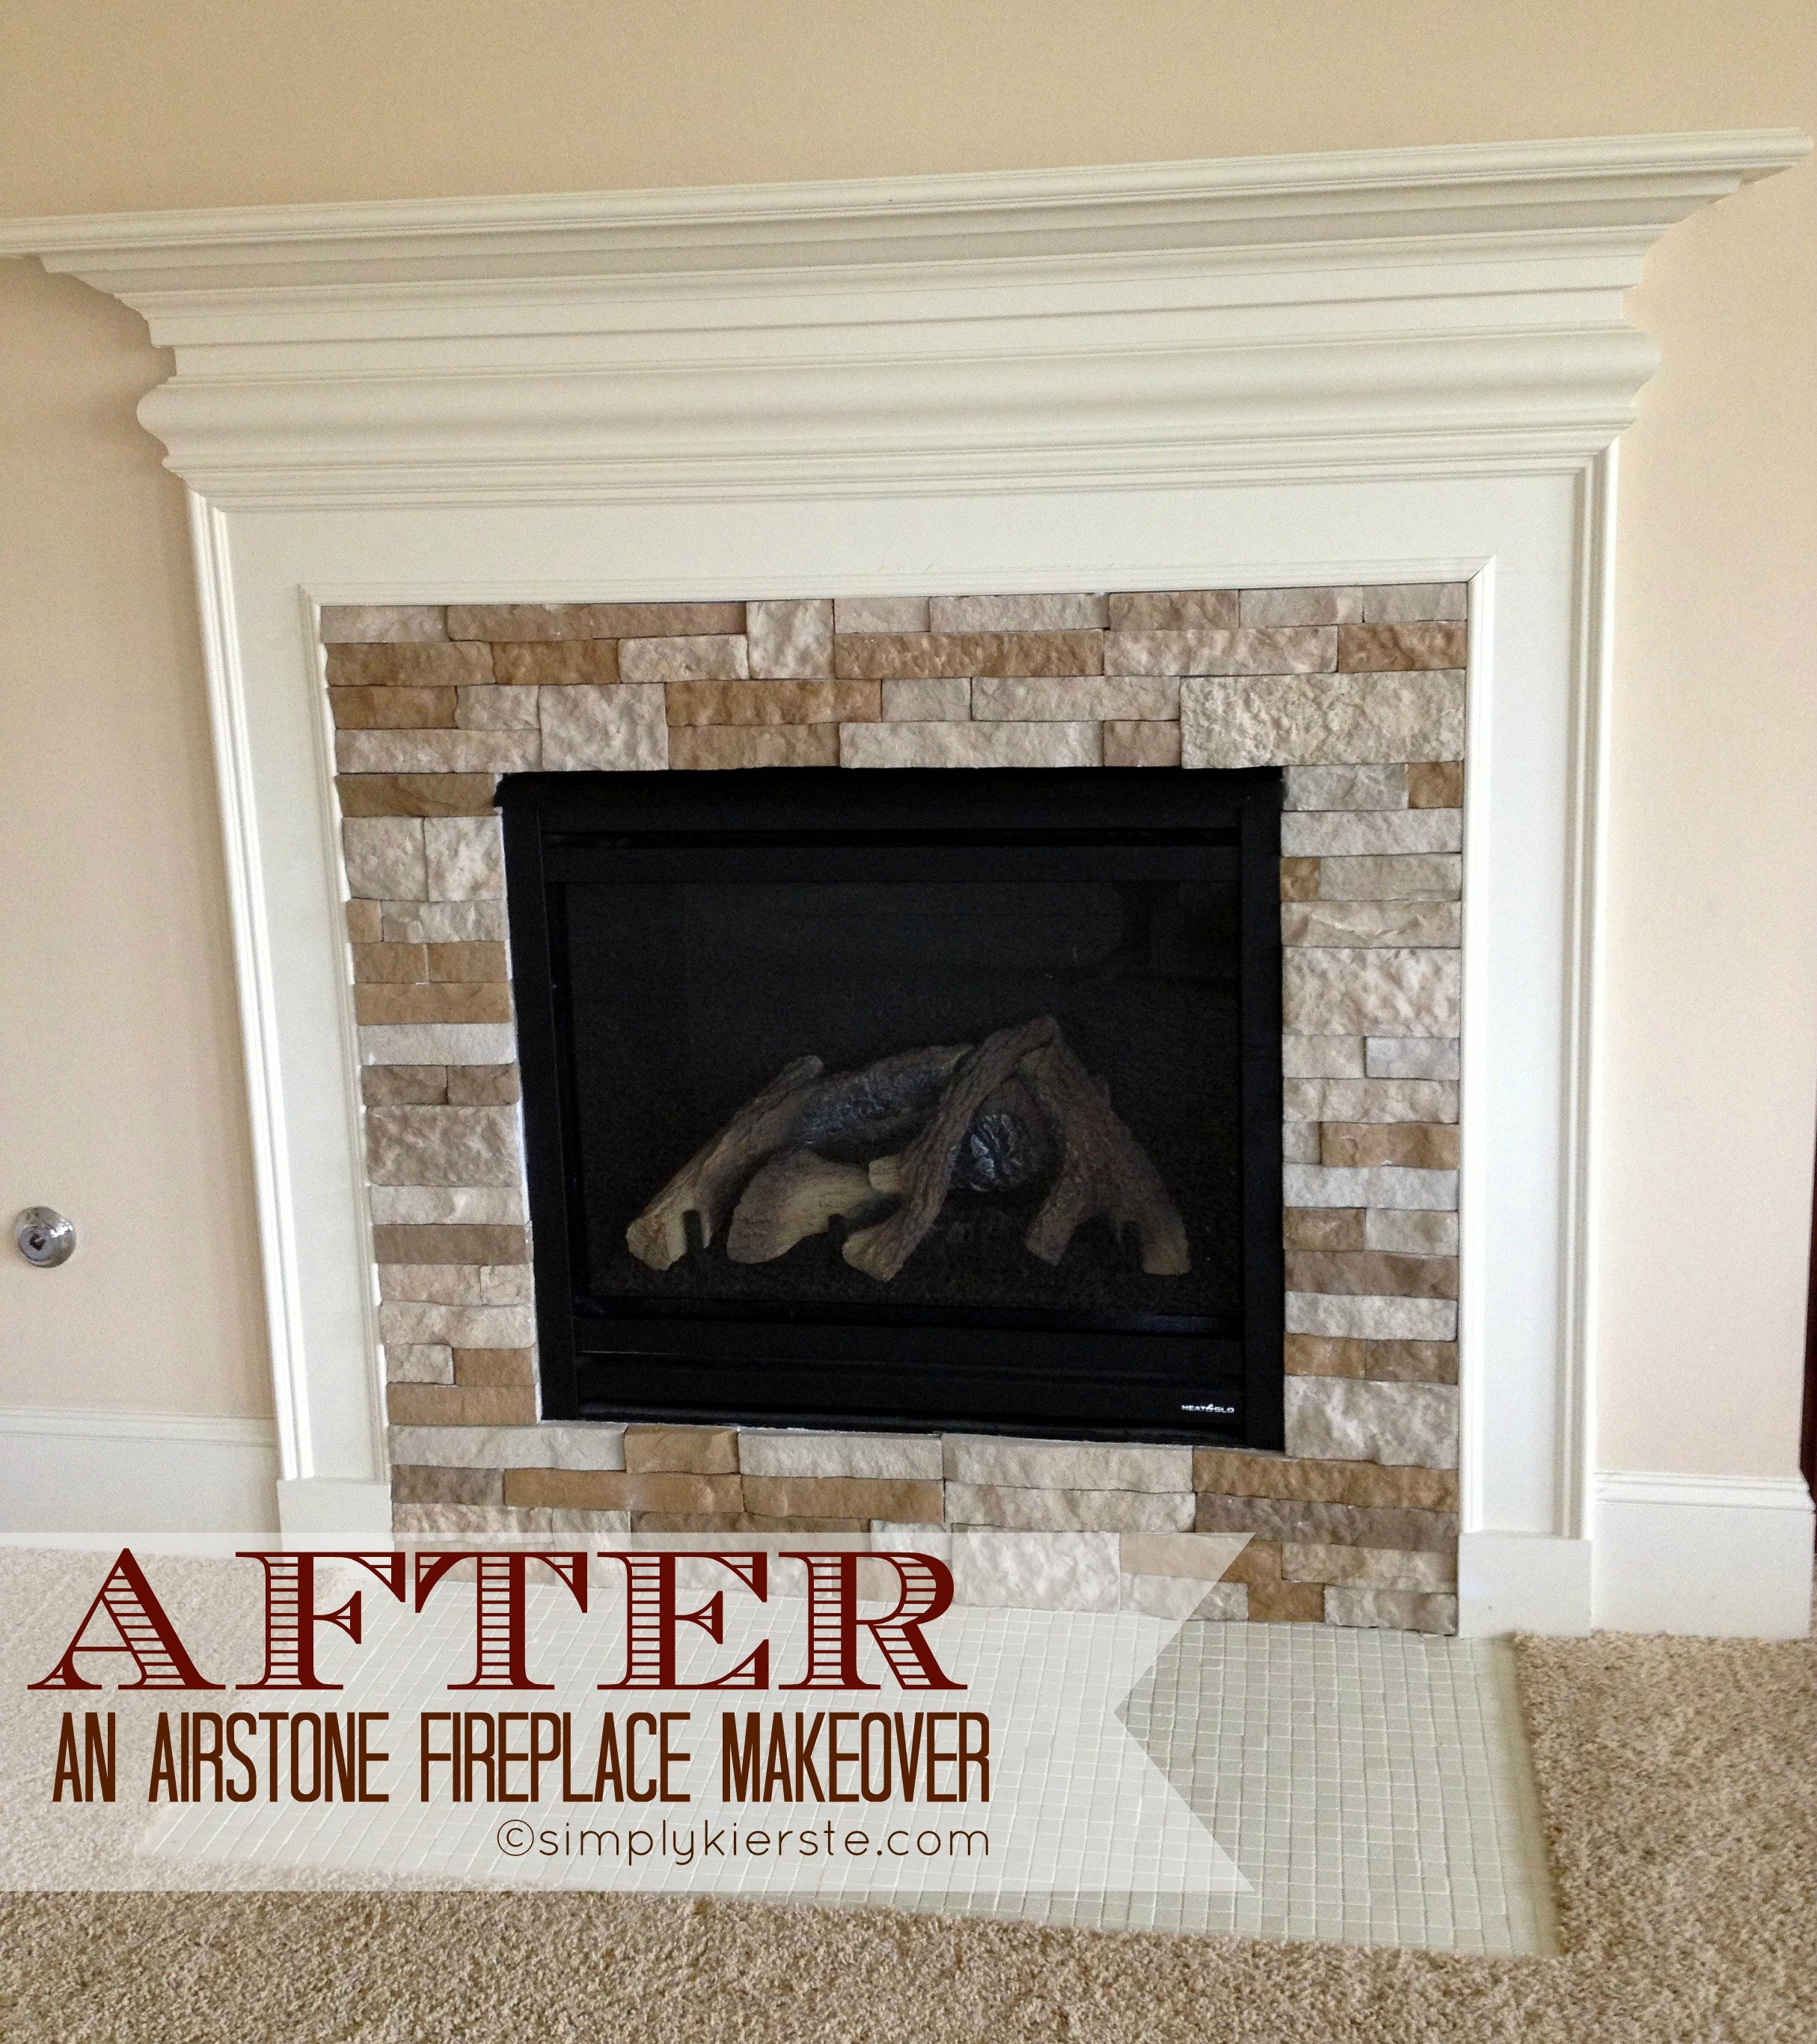 Fireplace Makeover Using Airstone | simplykierste.com